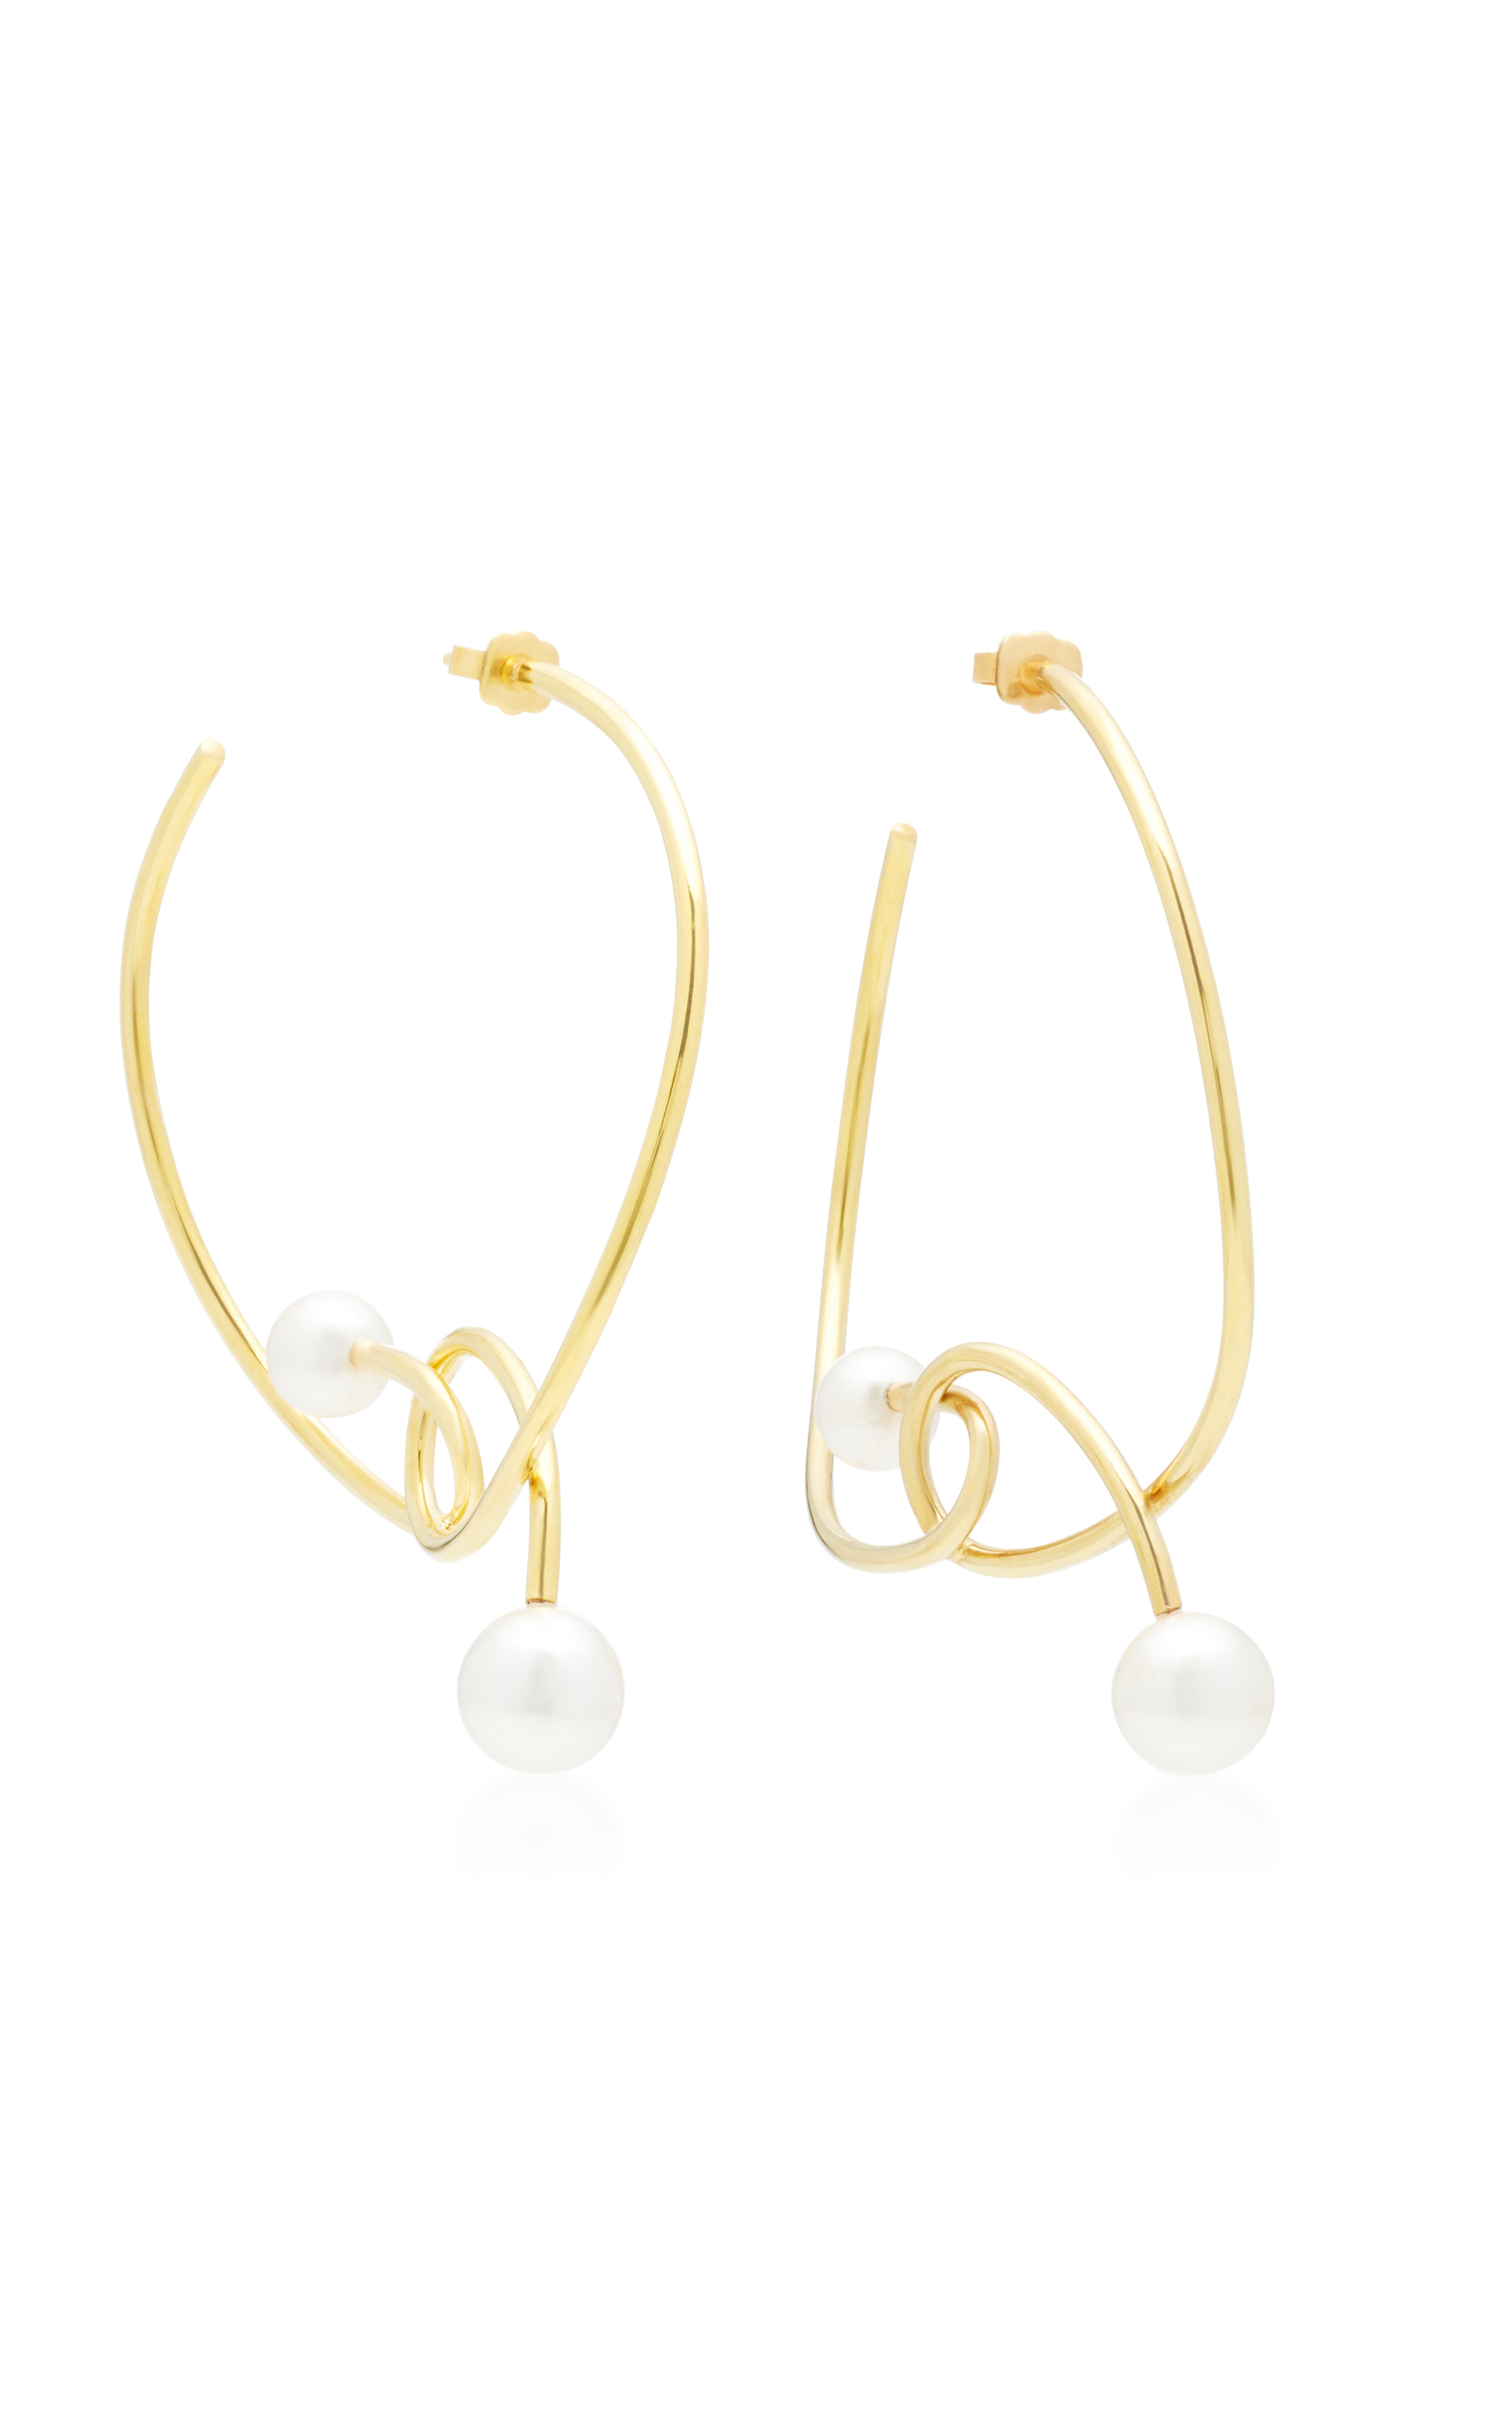 JOANNA LAURA CONSTANTINE GOLD-PLATED AND PEARL KNOT HOOP EARRINGS